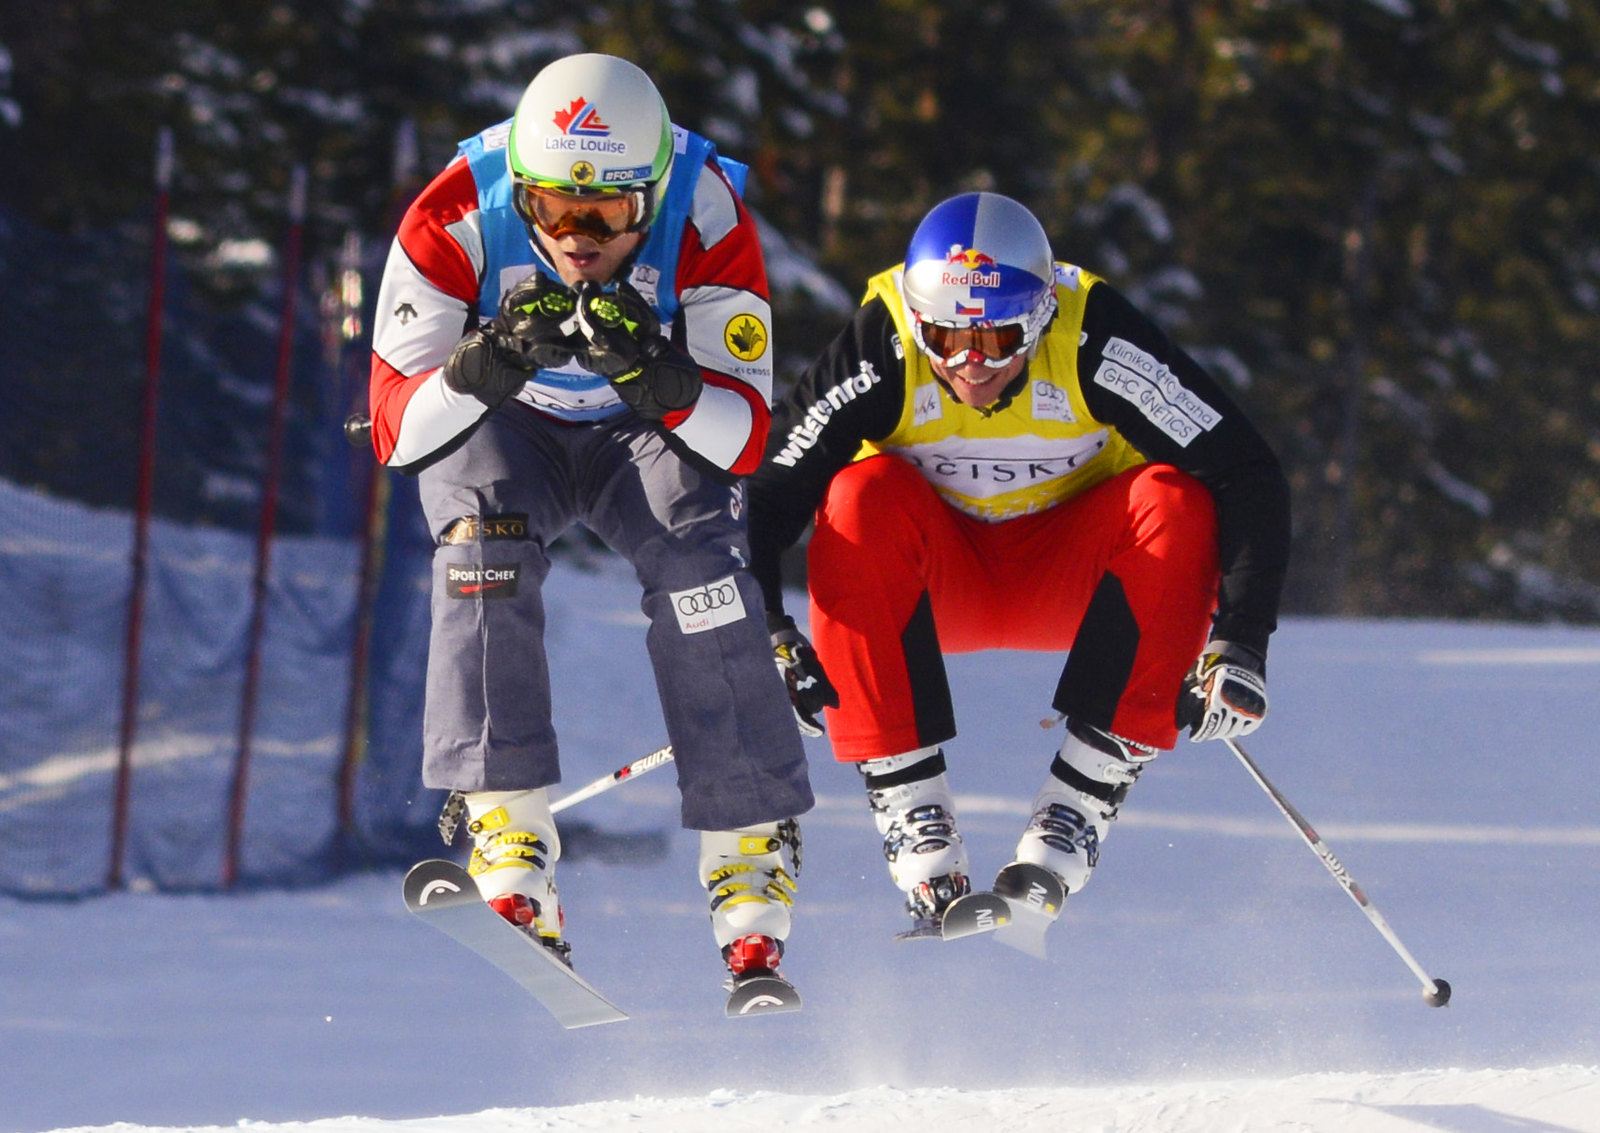 Brady Leman on his way to a sixth-place finish at the Nakiska ski cross World Cup.